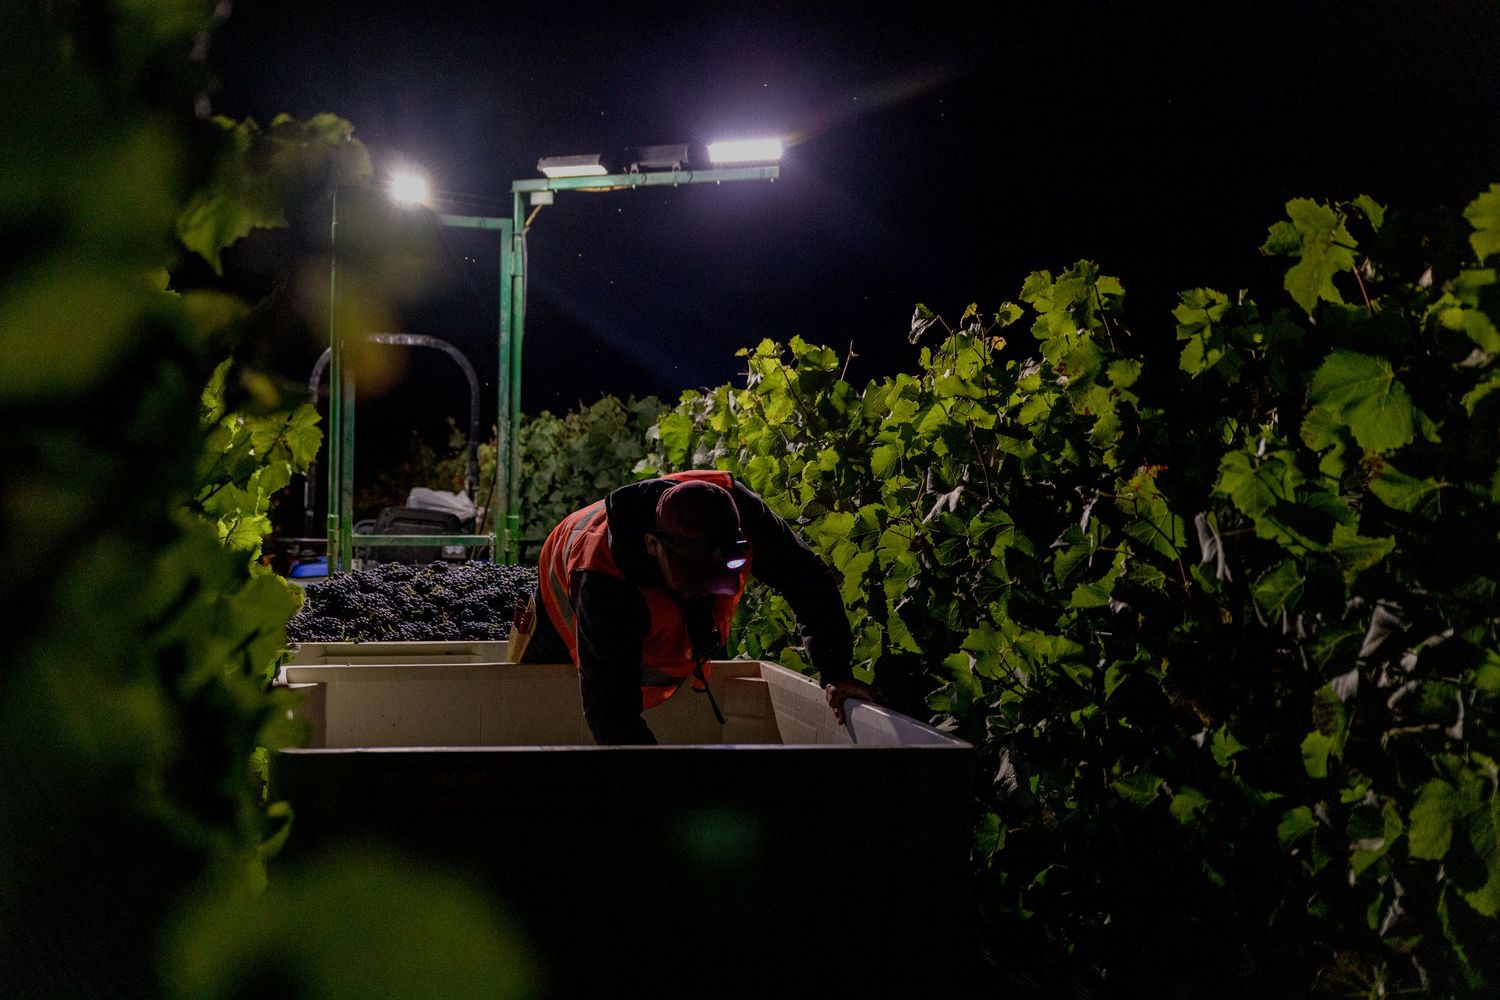 Vineyard worker sorting wine grapes at peake Ranch Vineyard in Santa Barbara Wine Country